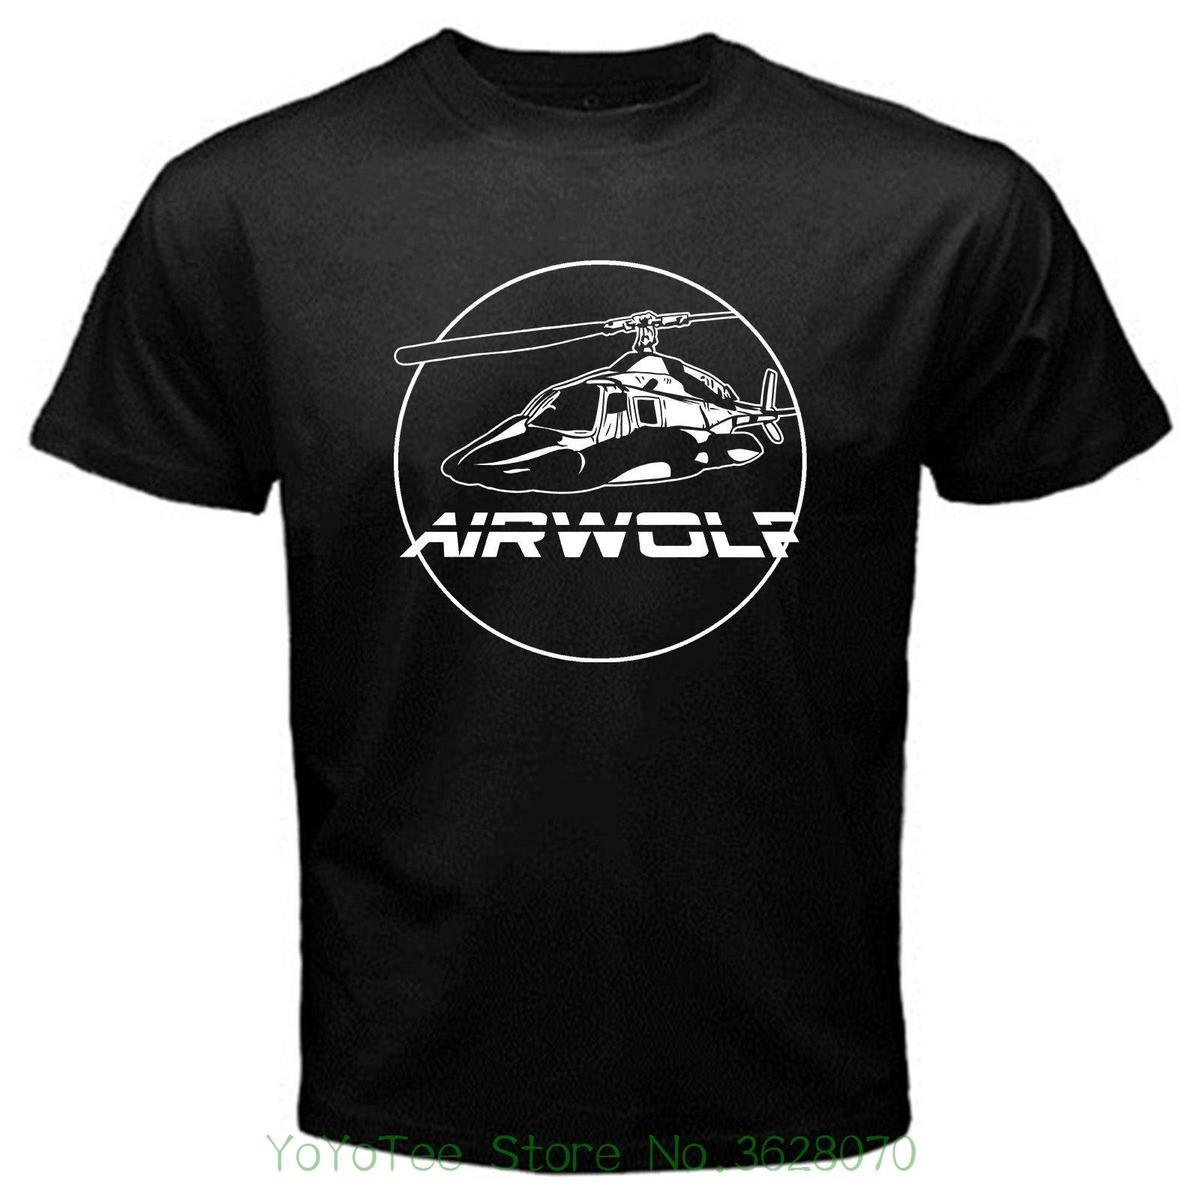 09068c840 Casual Fitness Men T Shirts Airwolf 1 Santini Hawke 80' ; S Tv Vintage Lost  Alcatraz T Shirt Black T Shirt Funny Funny T Shirt Designs From  Amesion2401, ...